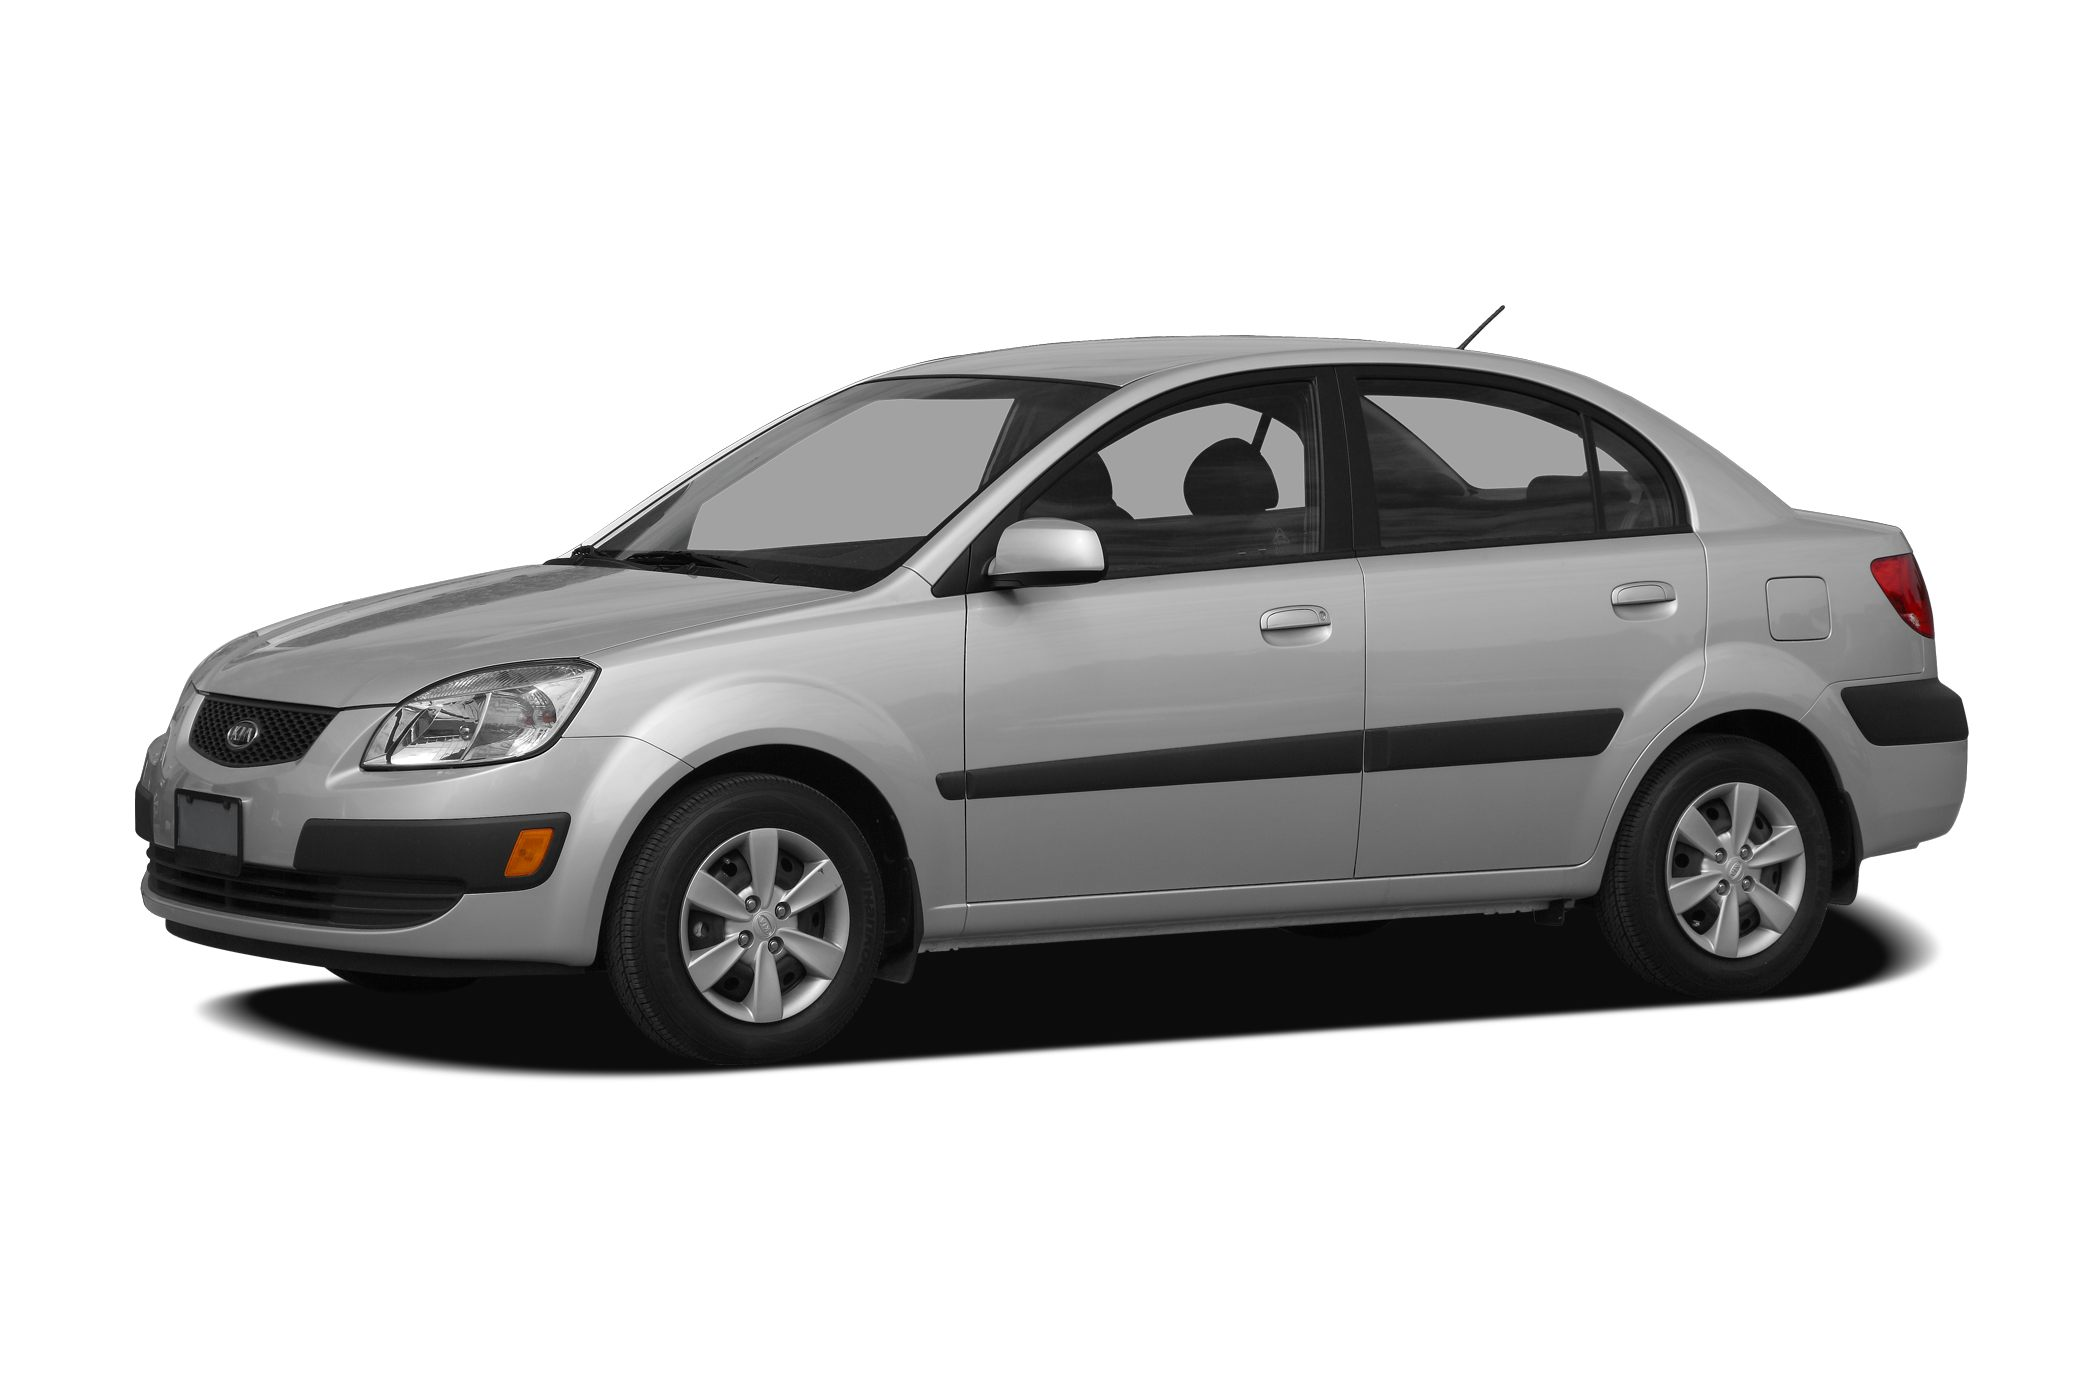 2008 Kia Rio LX Sedan for sale in Thomasville for $6,495 with 101,827 miles.